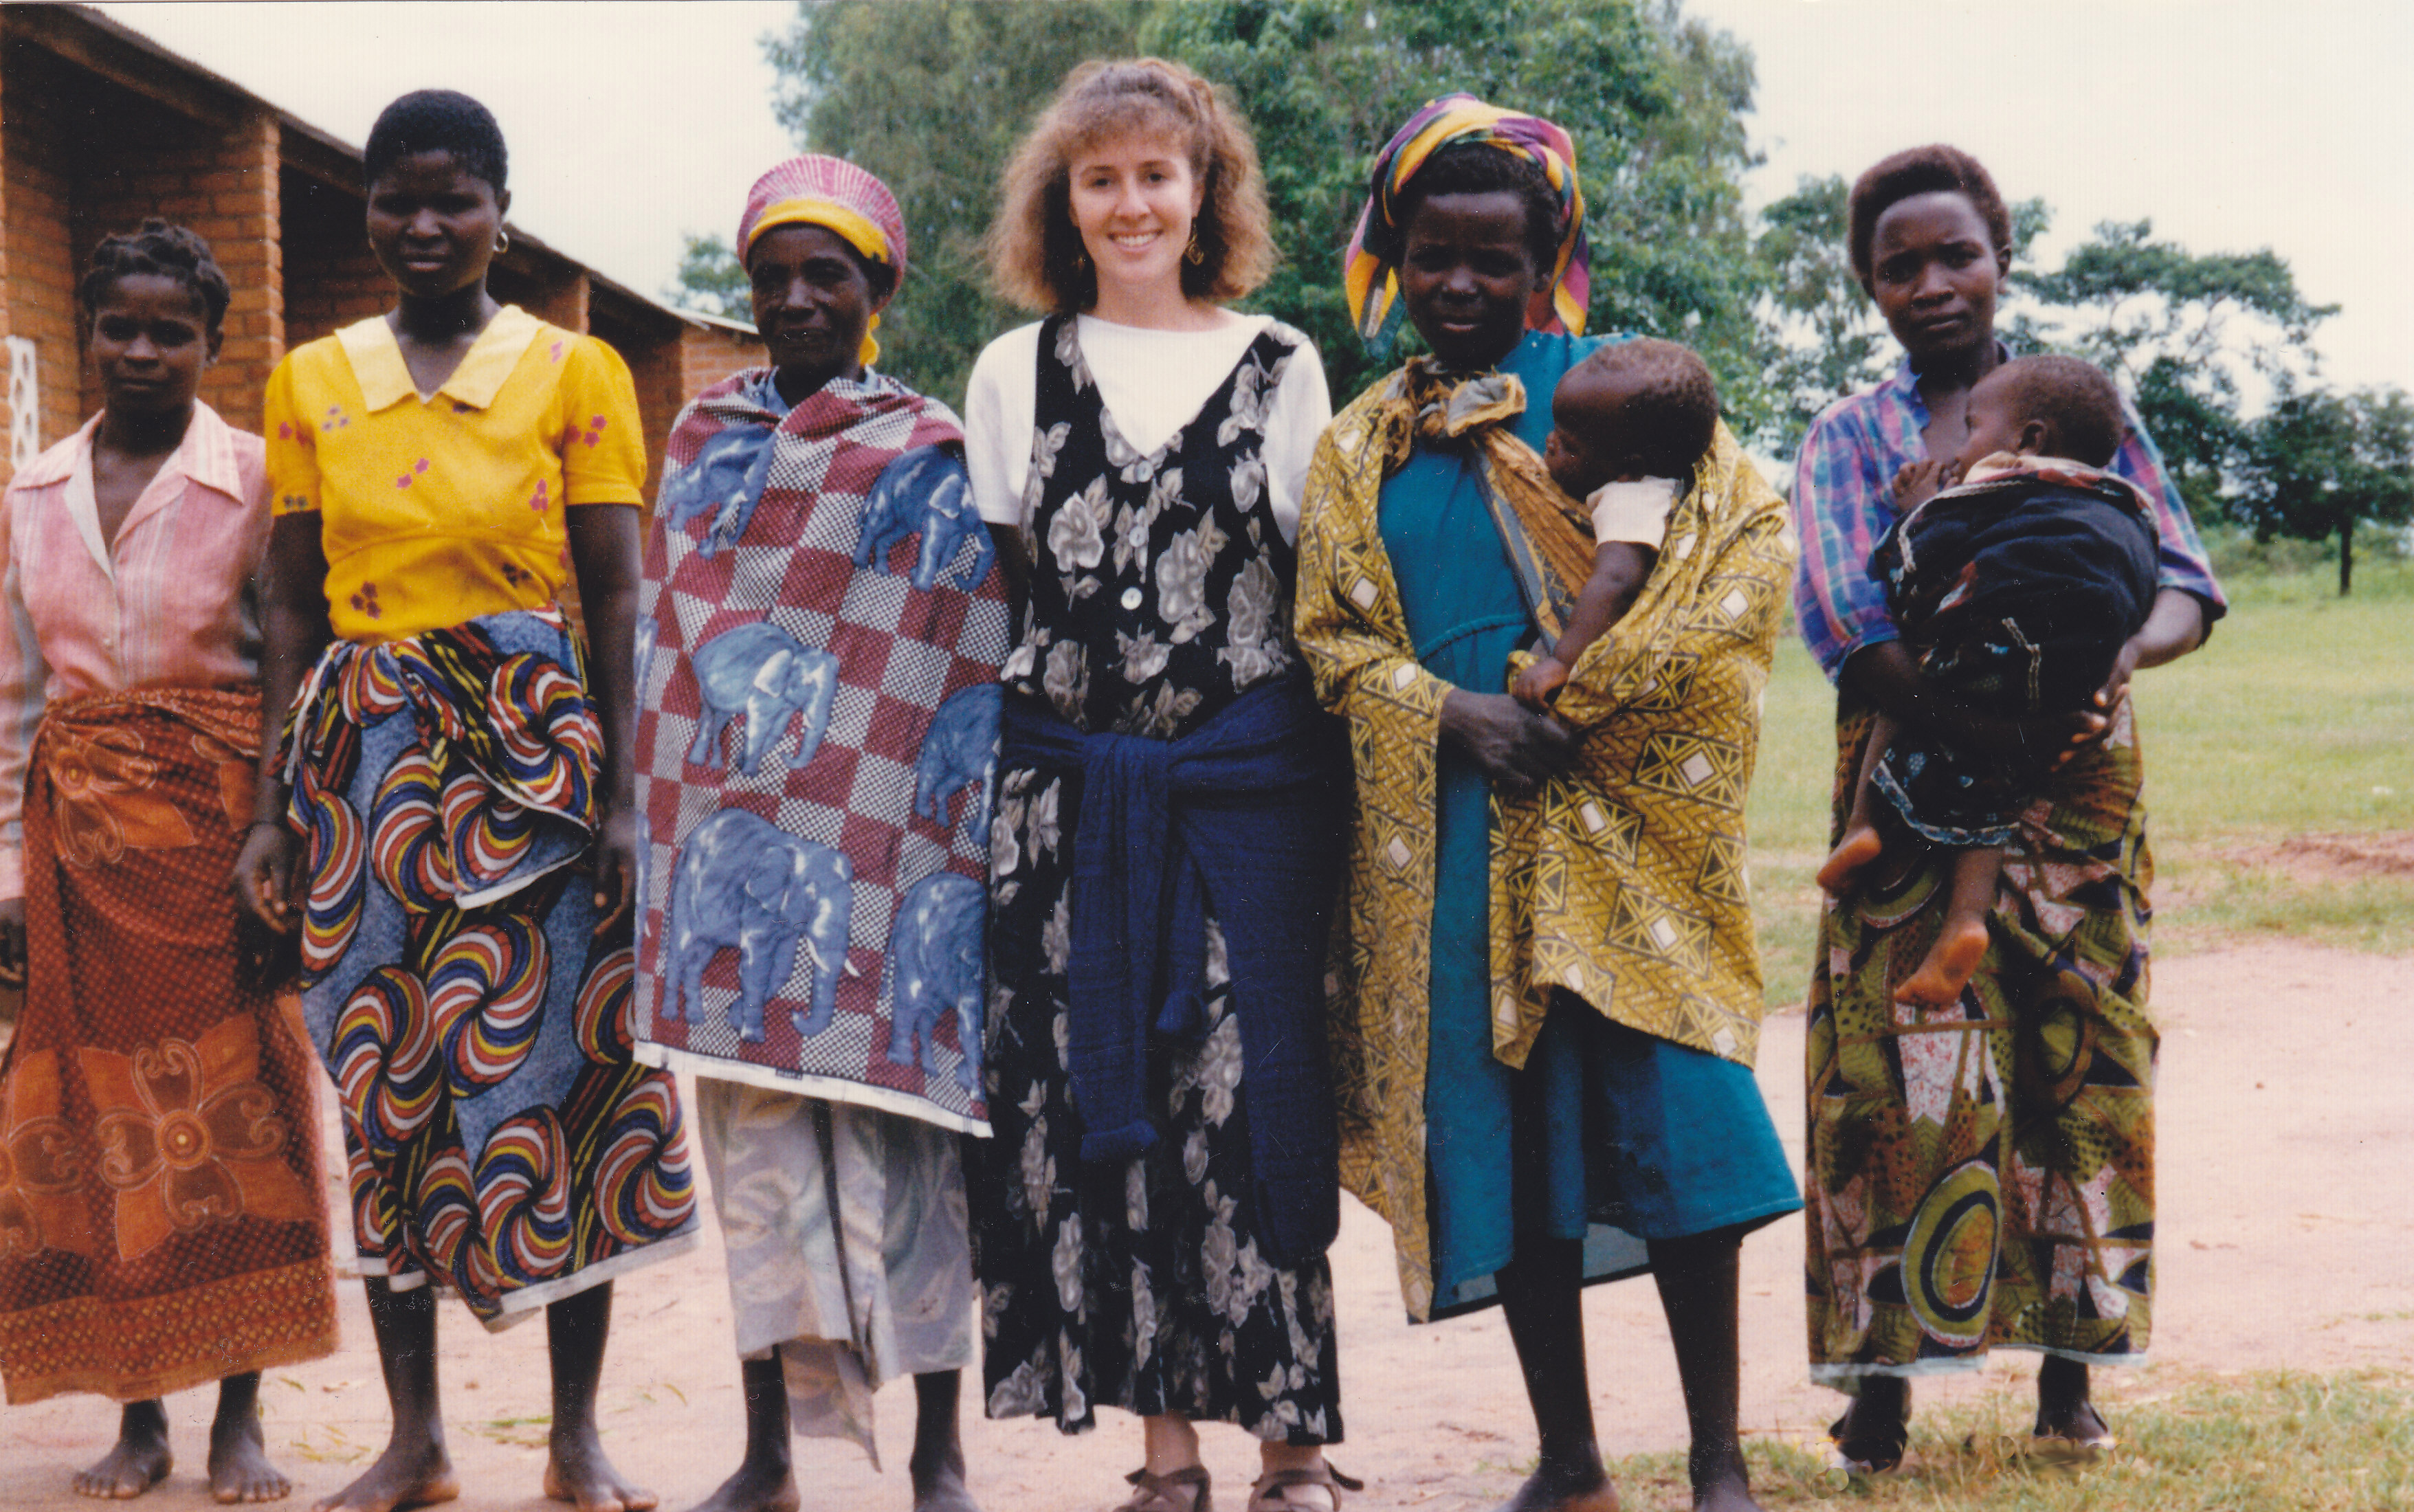 Author Shana Burg with villagers in Malawi photo